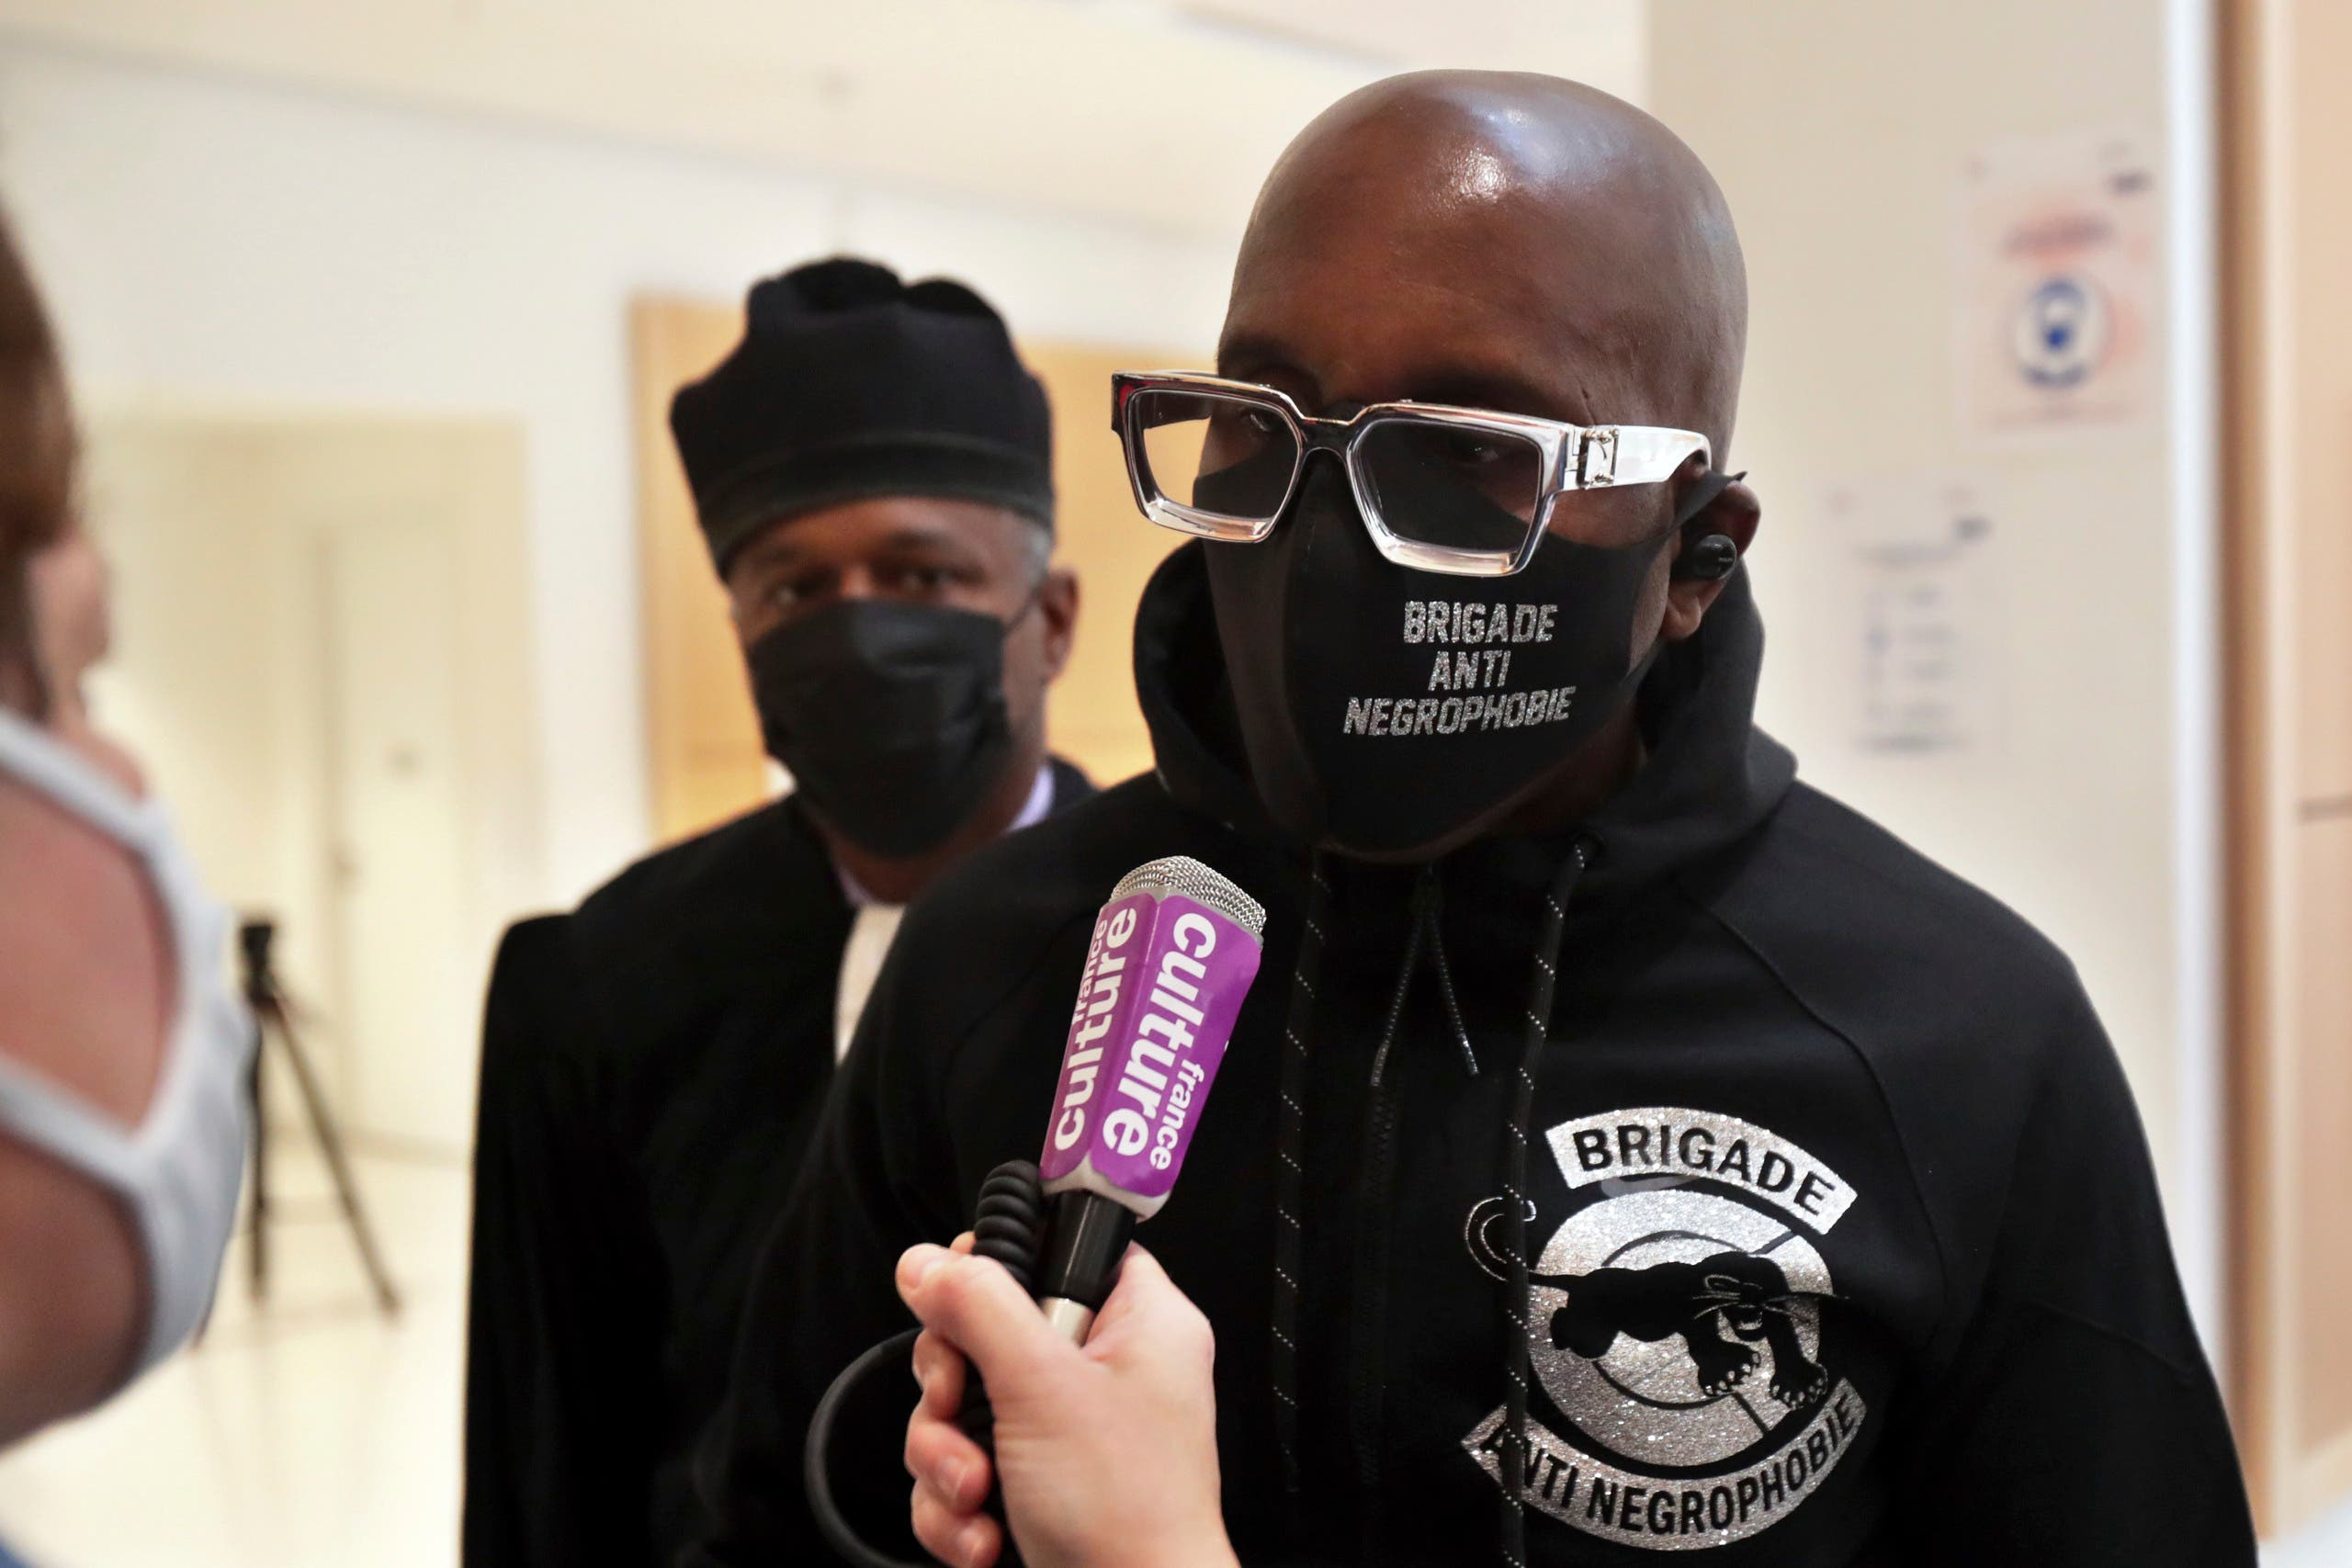 An activist from a group called the Anti-Negrophobia Brigade, Franco Lollia, wears a face mask reading Anti-Negrophobia Brigade as he talks to media at the Paris courthouse, in Paris, May 10, 2021. (AP)